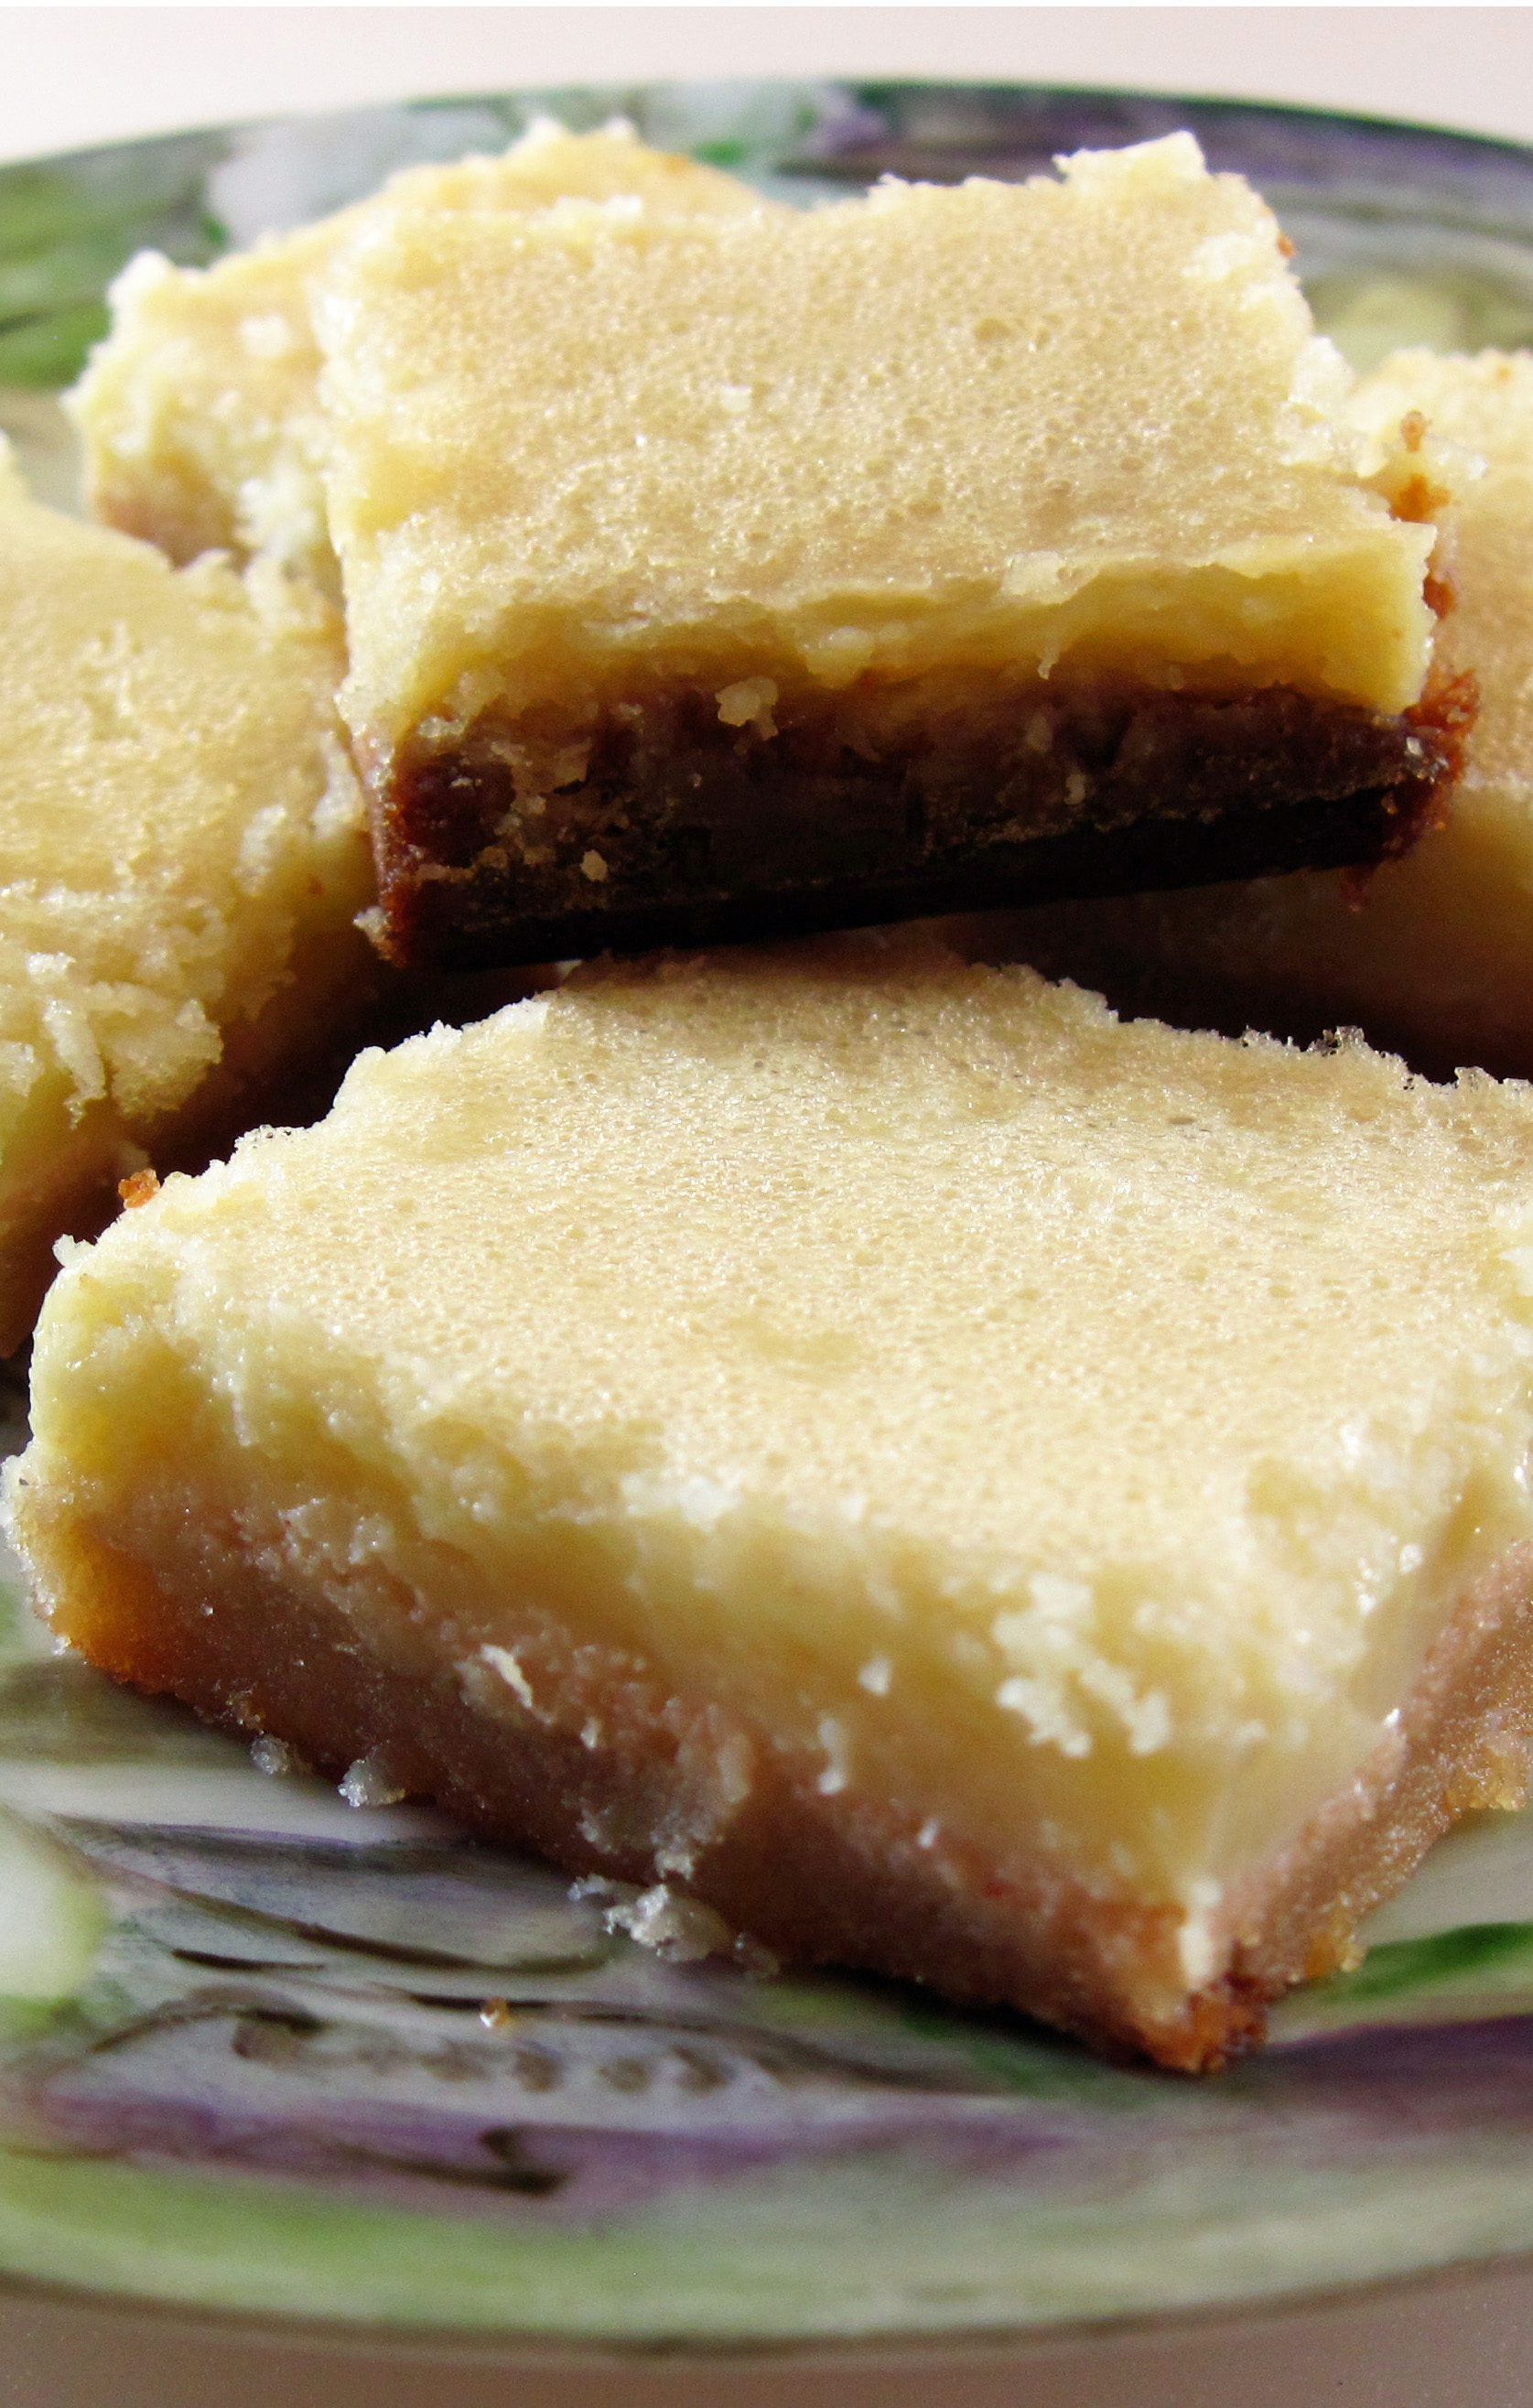 Gluten Free Lemon Bars 2.JPG